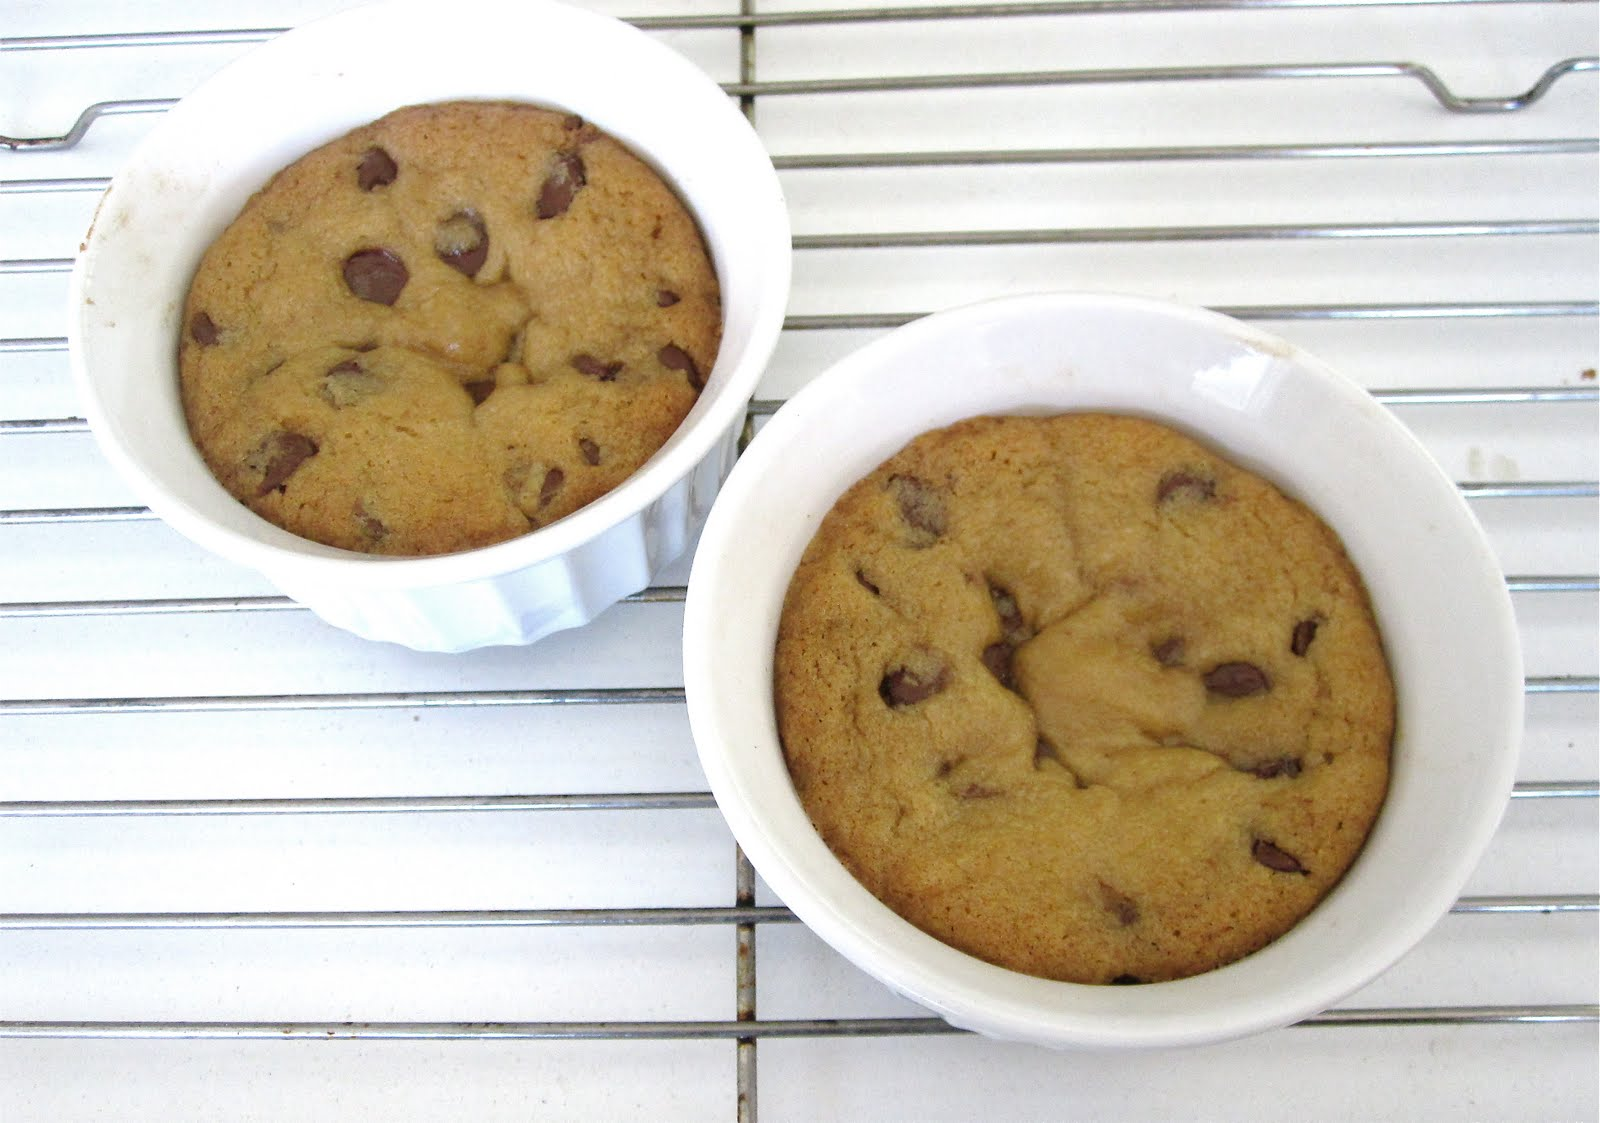 Center of cookie cups will sink upon cooling, creating a well for your ...